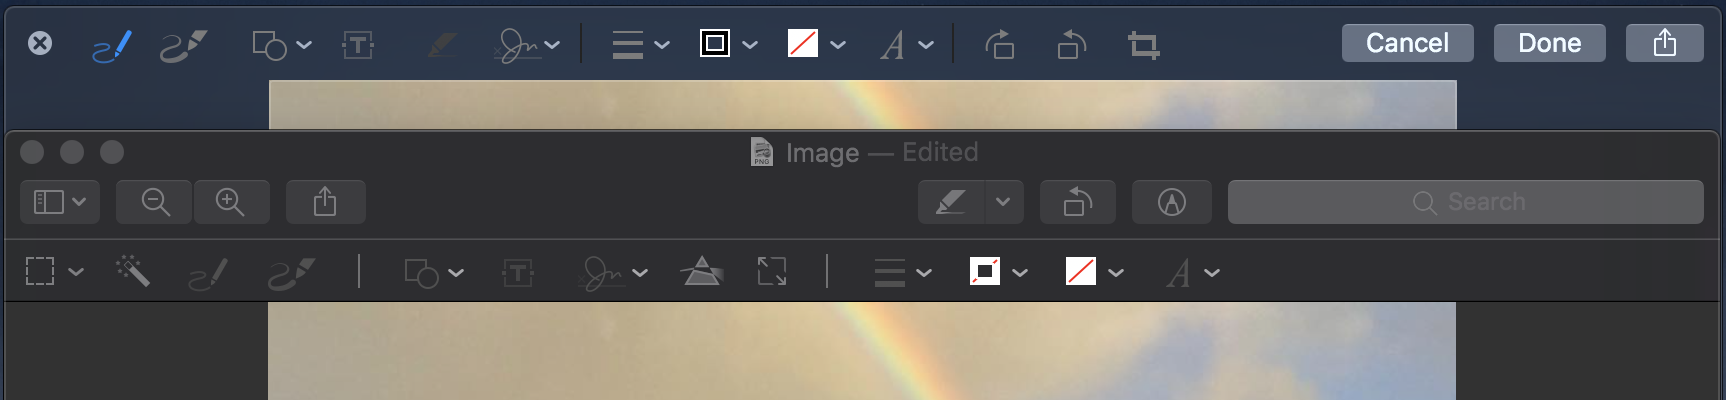 A Quick Look panel and Preview window of the same image present slightly different Markup tools.